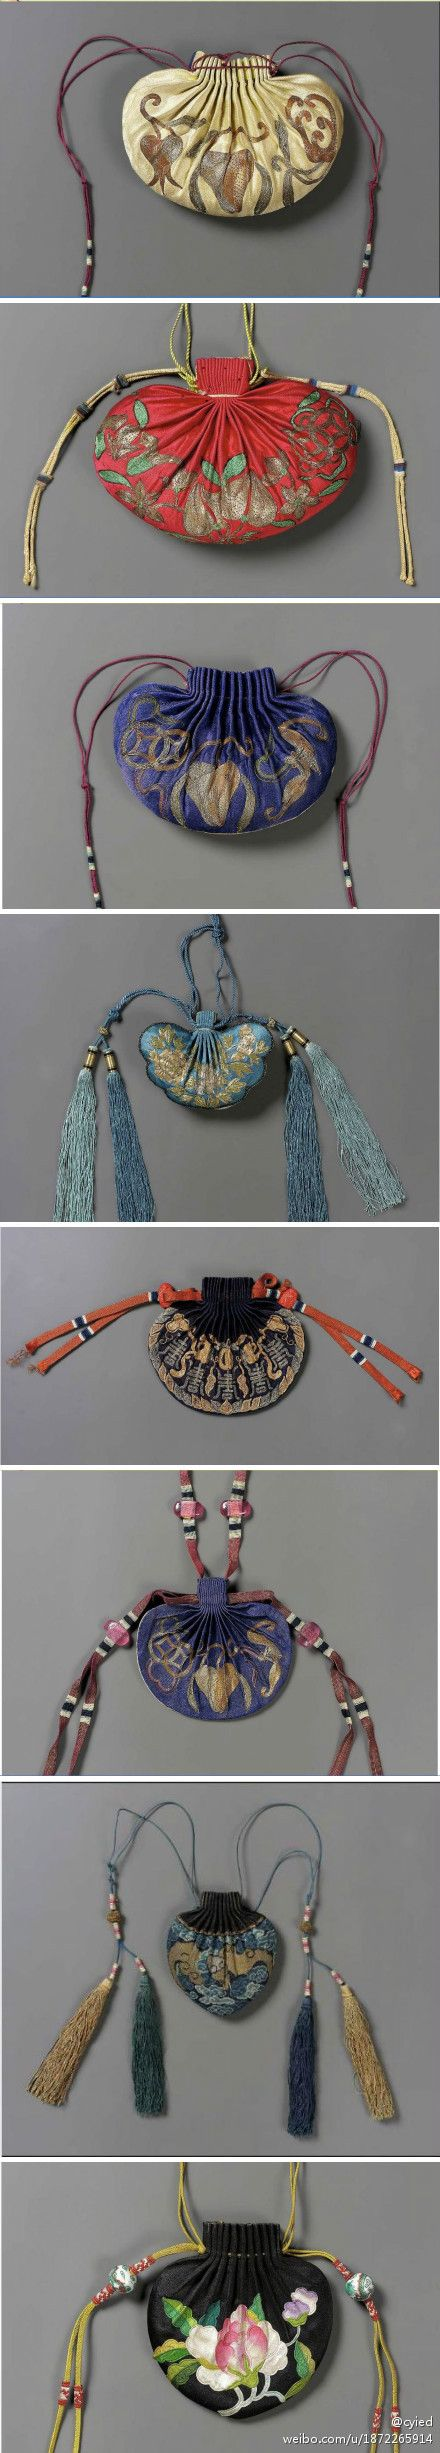 Chinese Textiles - Pouches